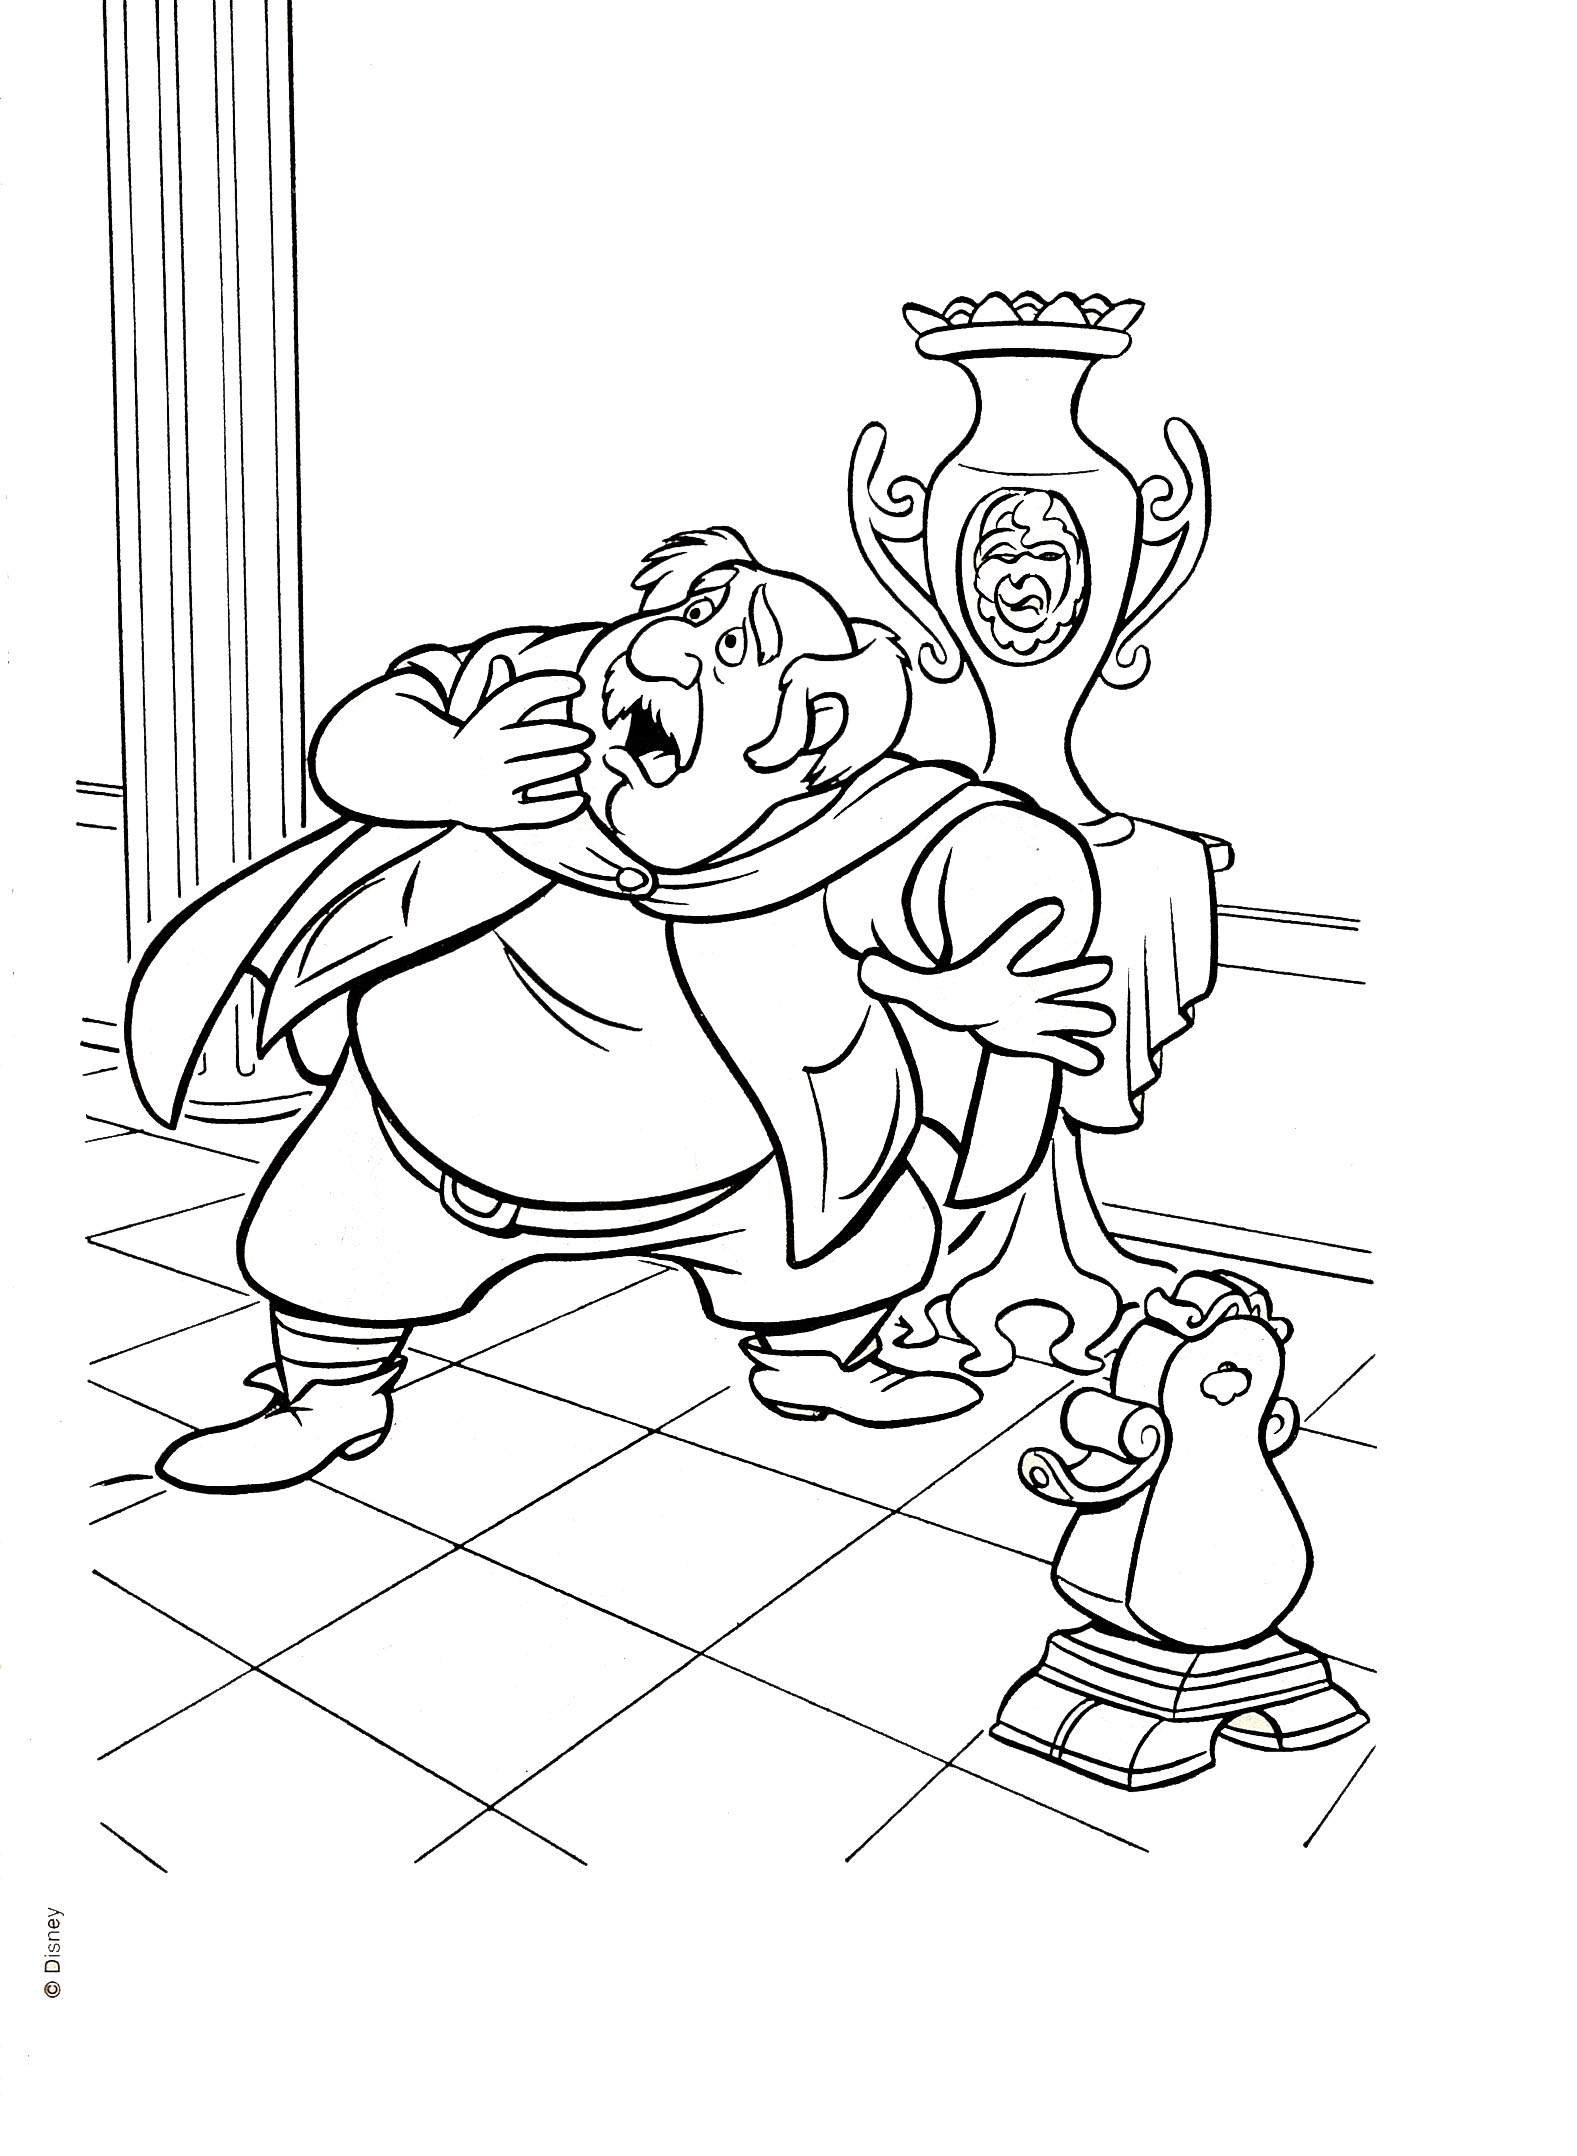 colorama coloring pages printable - photo#12